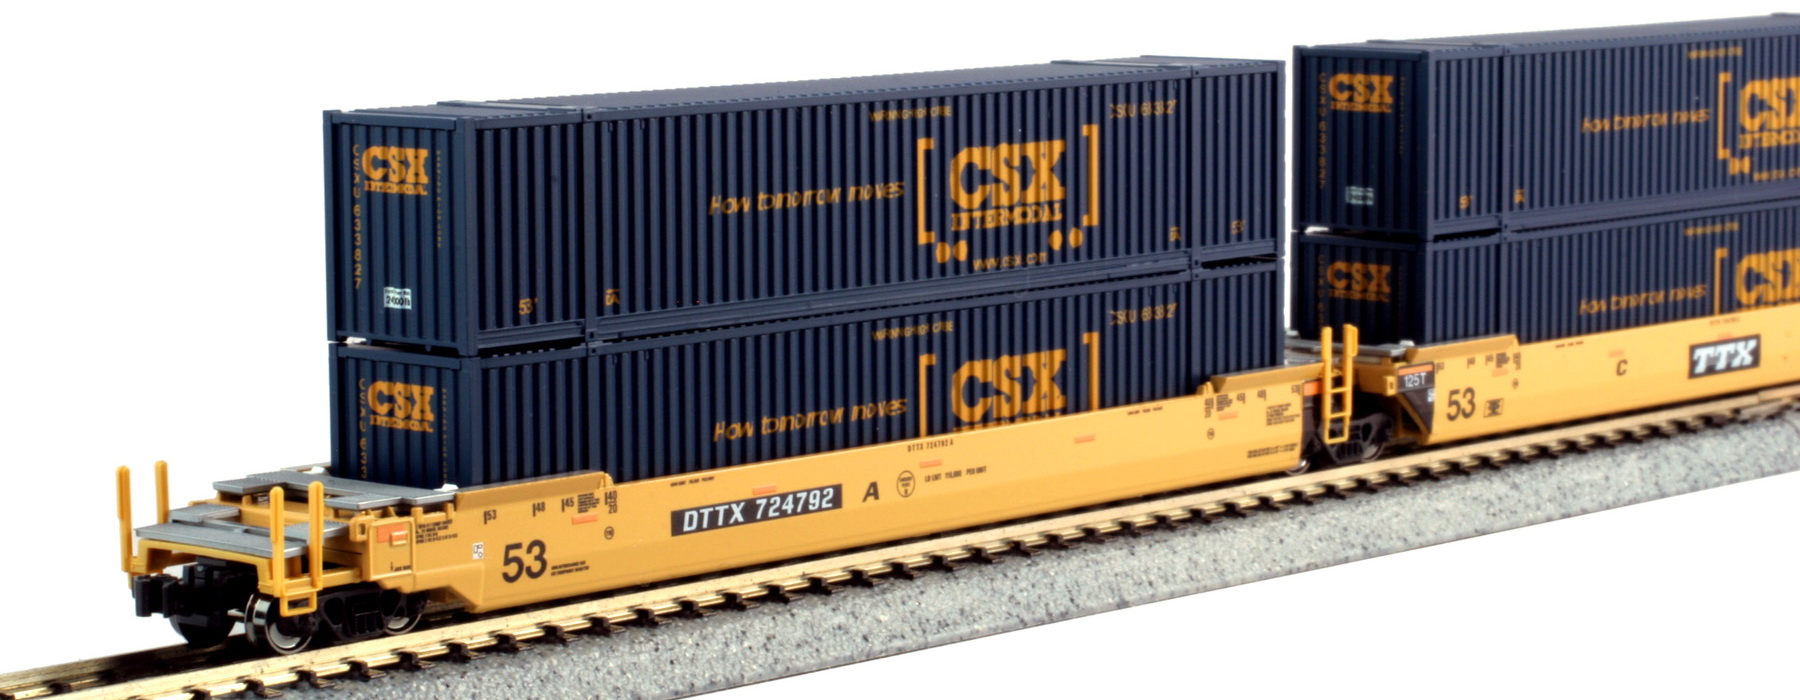 N Scale - Kato USA - 106-6175 - Container Car, Articulated Well, Gunderson Maxi-Stack IV - TTX Trailer Train - 724792